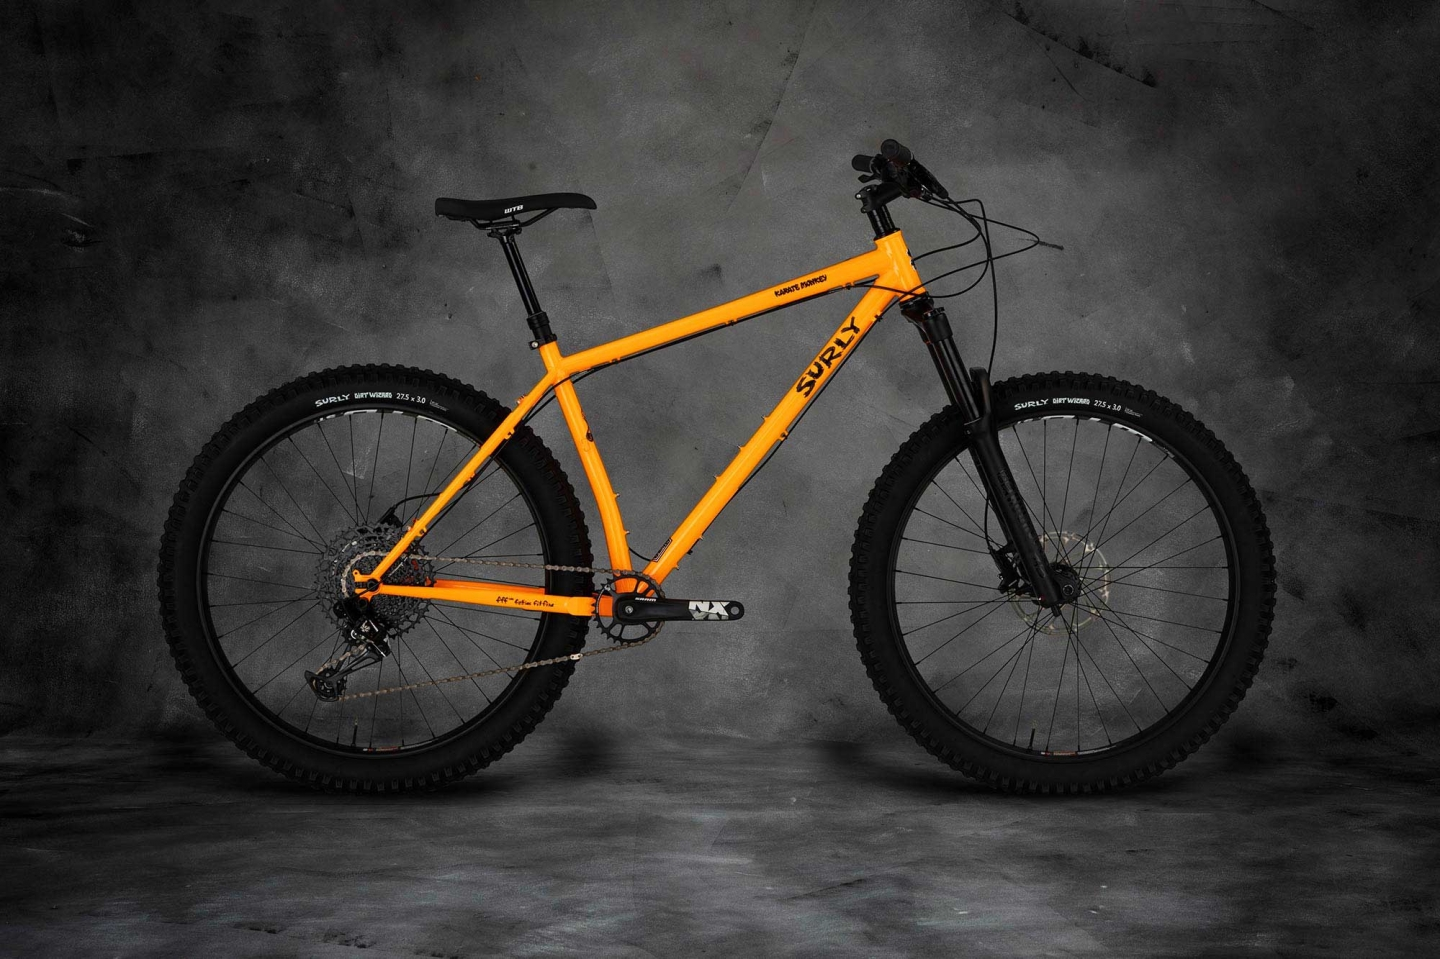 Karate Monkey front suspension bike, Toxic Tangerine